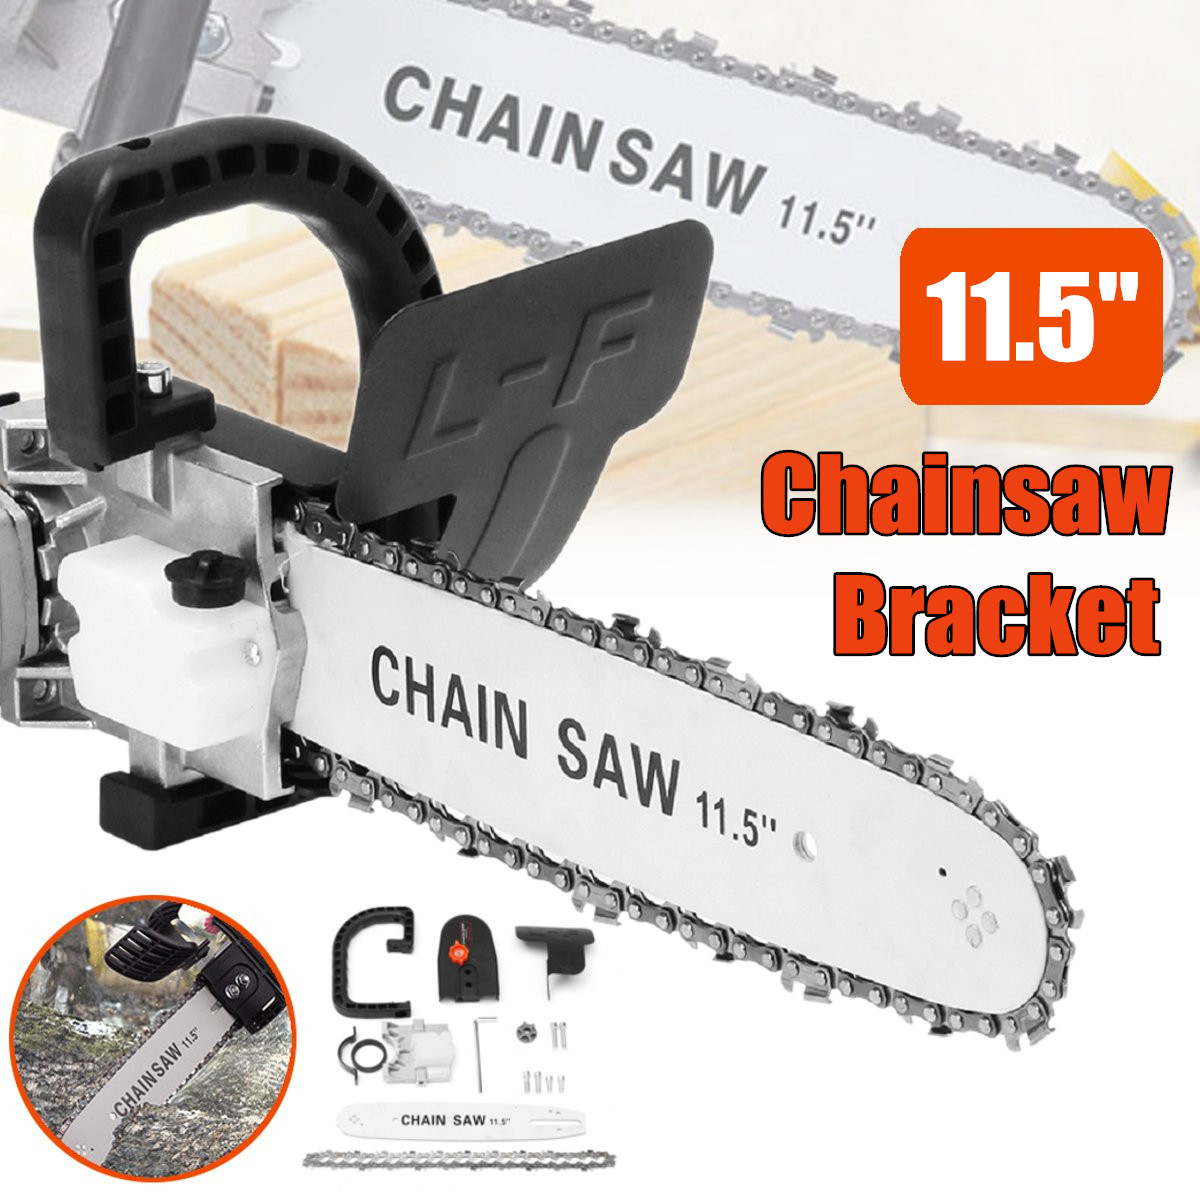 Upgrade Electric Saw Parts 11.5 Inch M10 Chainsaw Bracket Changed 100 Angle Grinder Into Chain Saw For Any Angle Grinder